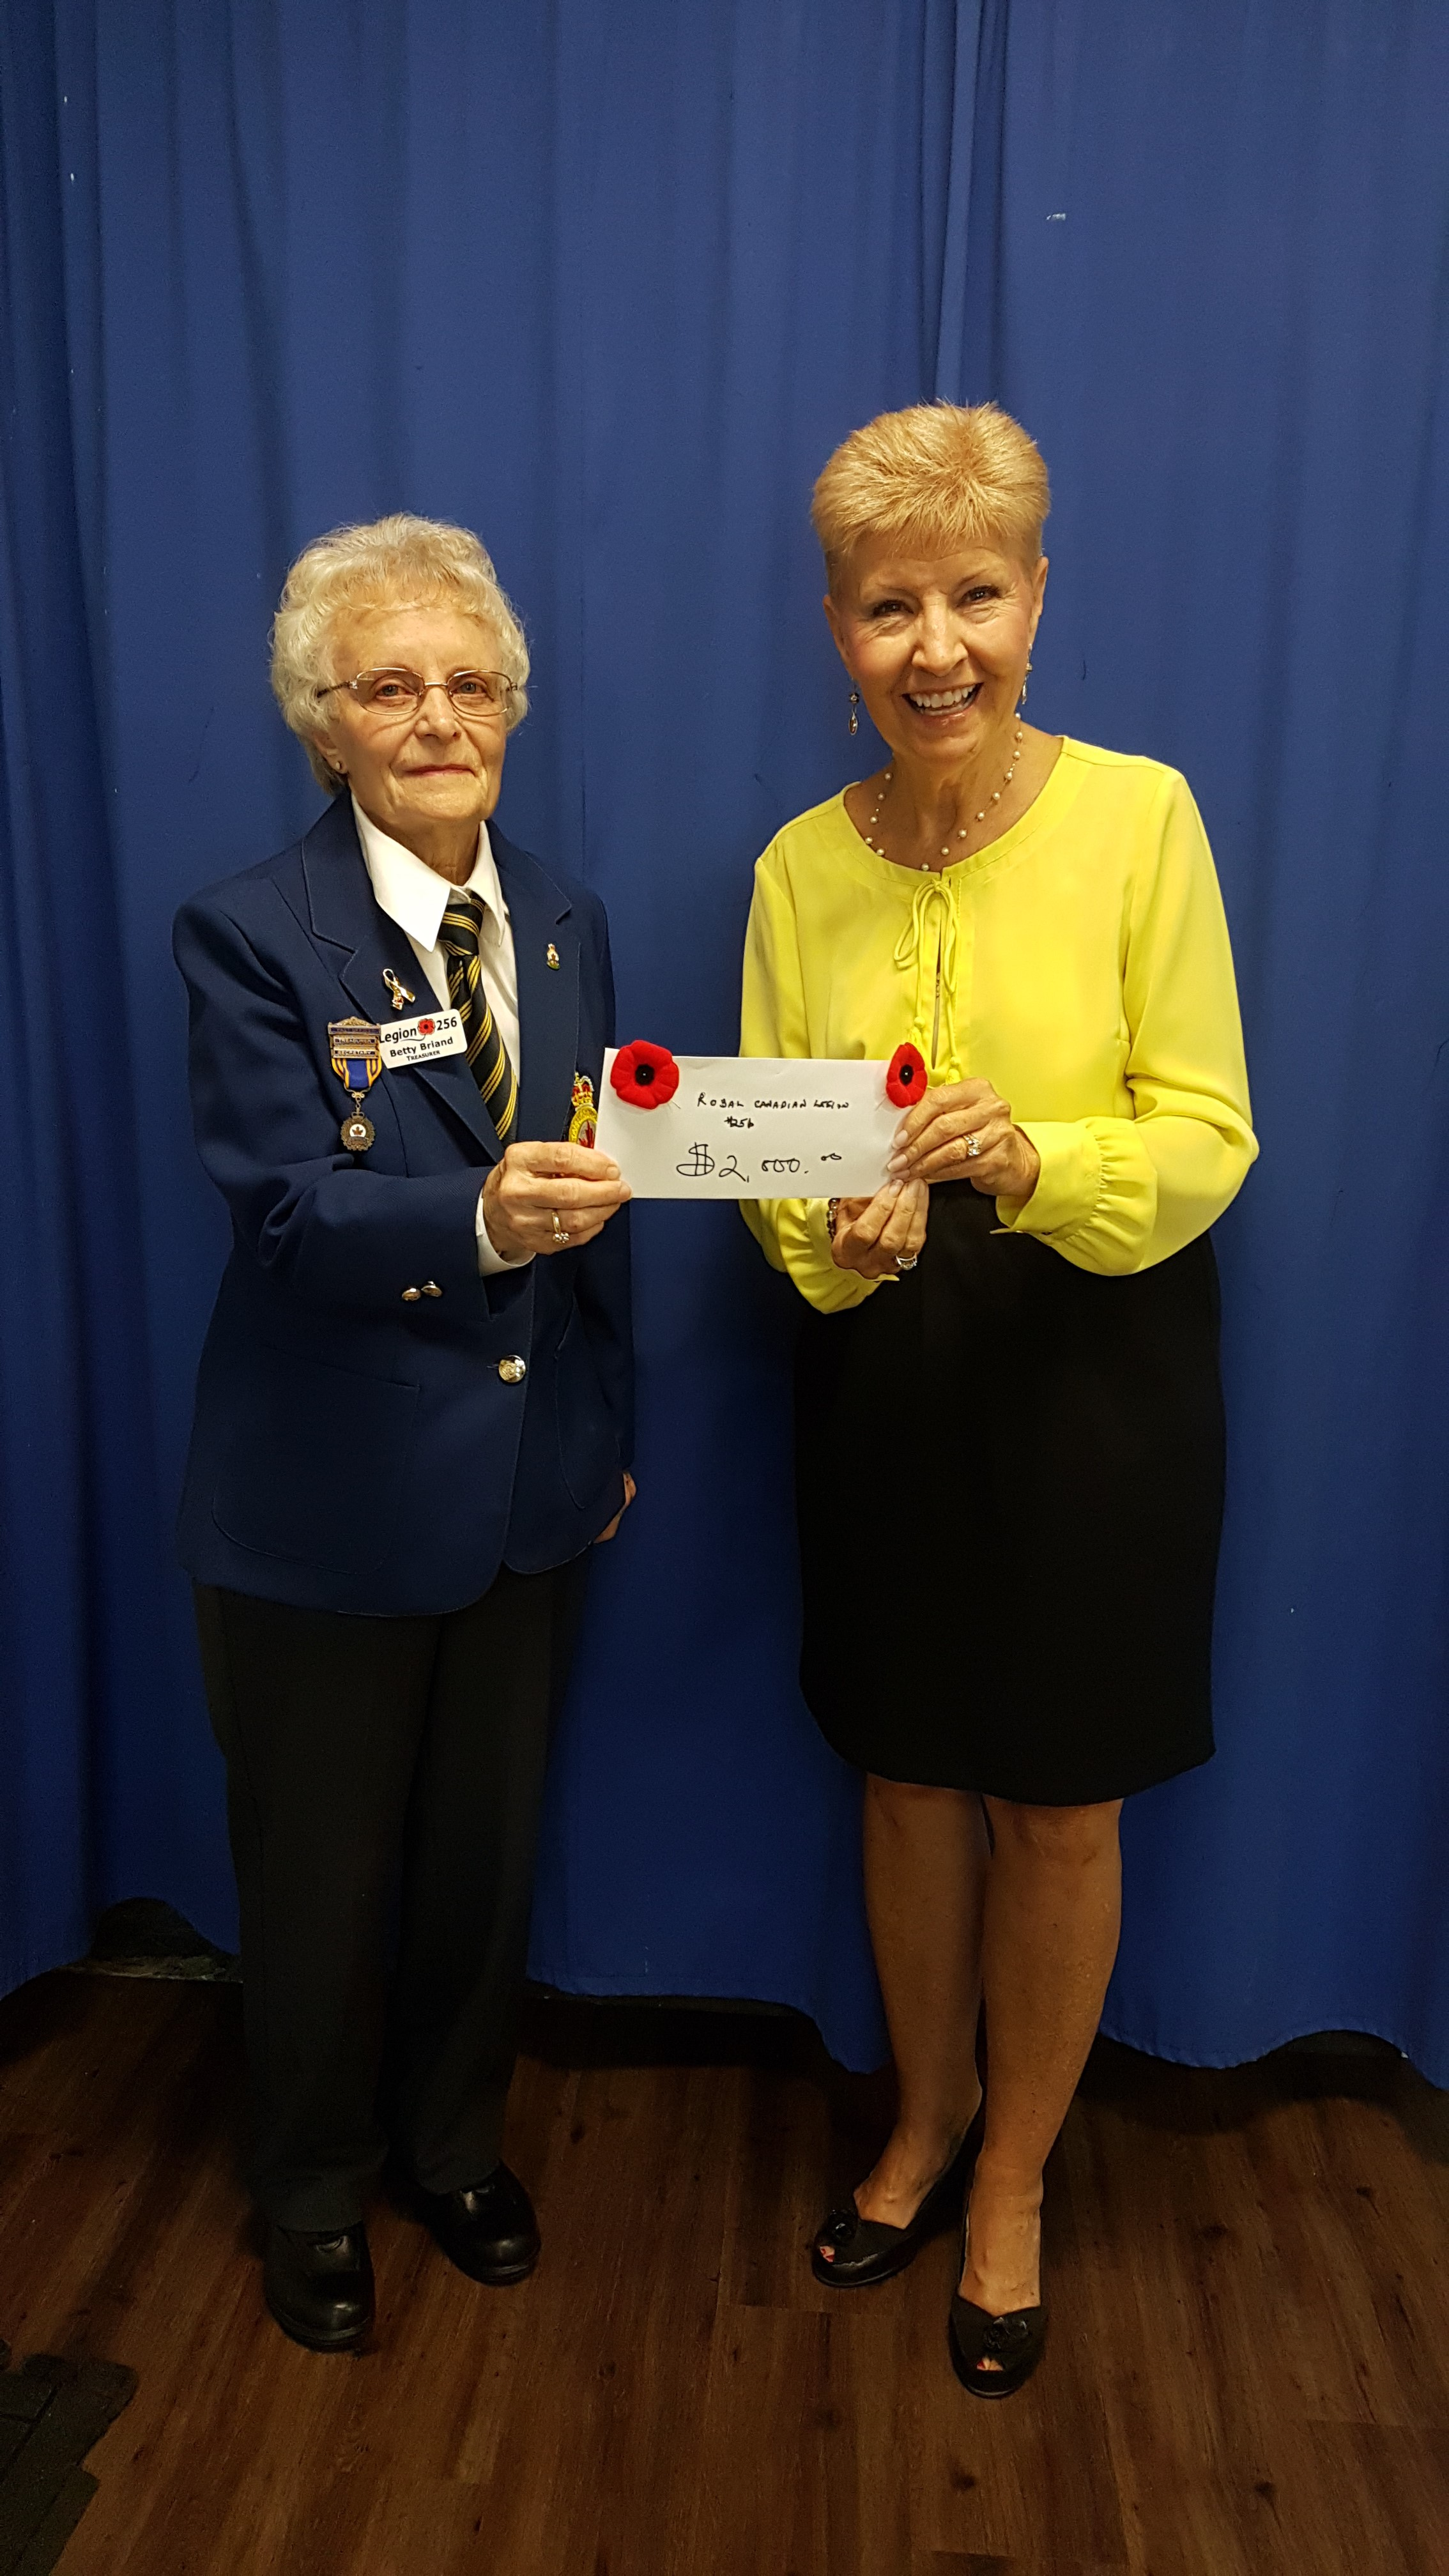 Royal Canadian Legion Branch 256 Continues Their Support